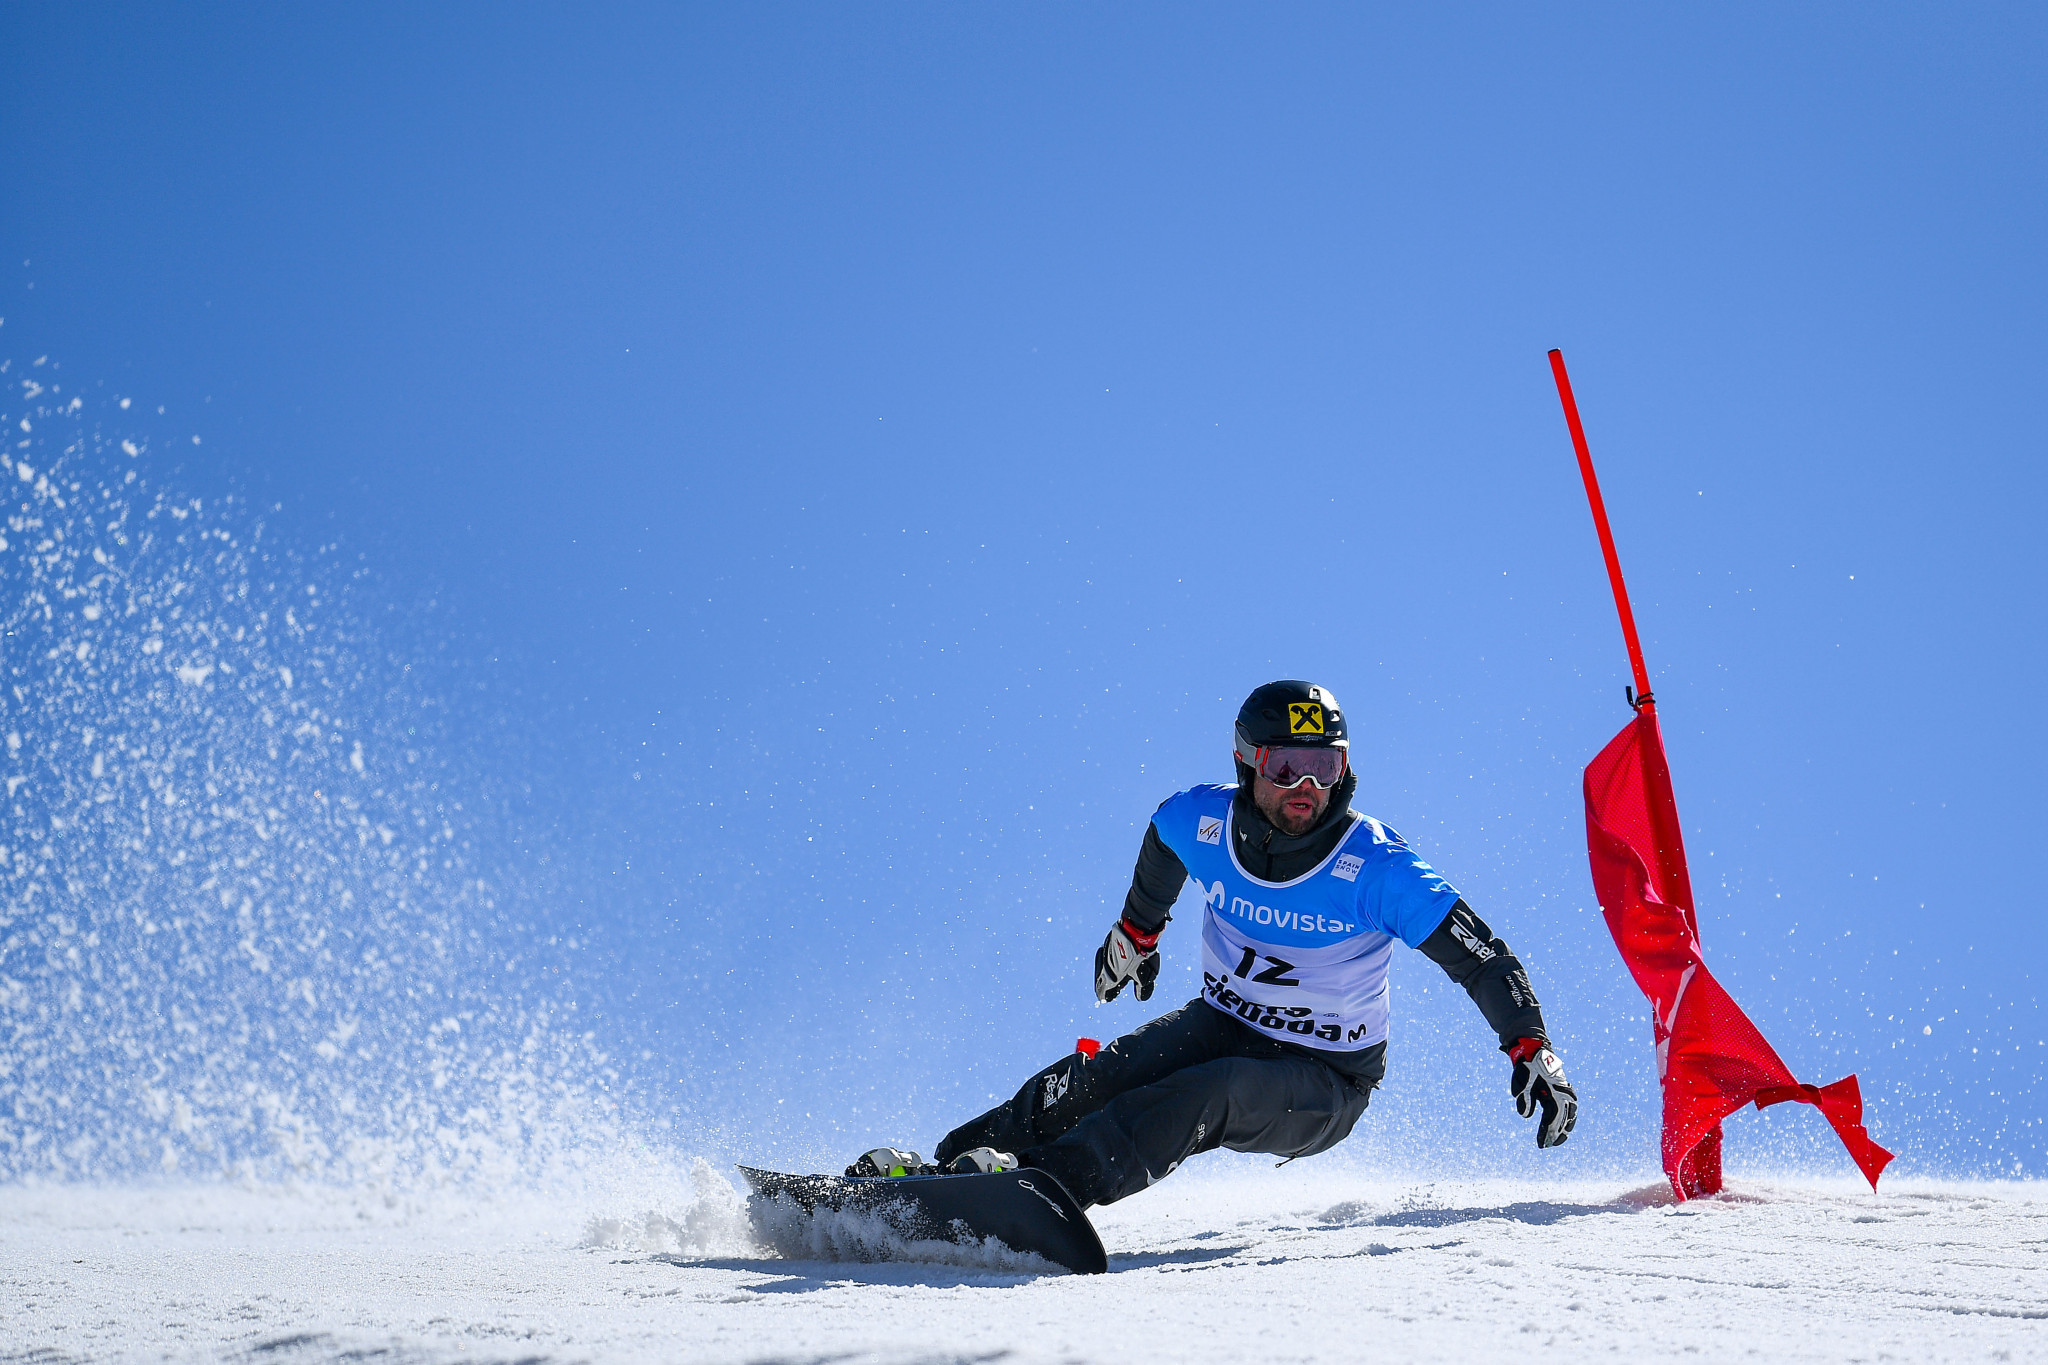 Prommegger on top at FIS Alpine Snowboard World Cup in Piancavallo